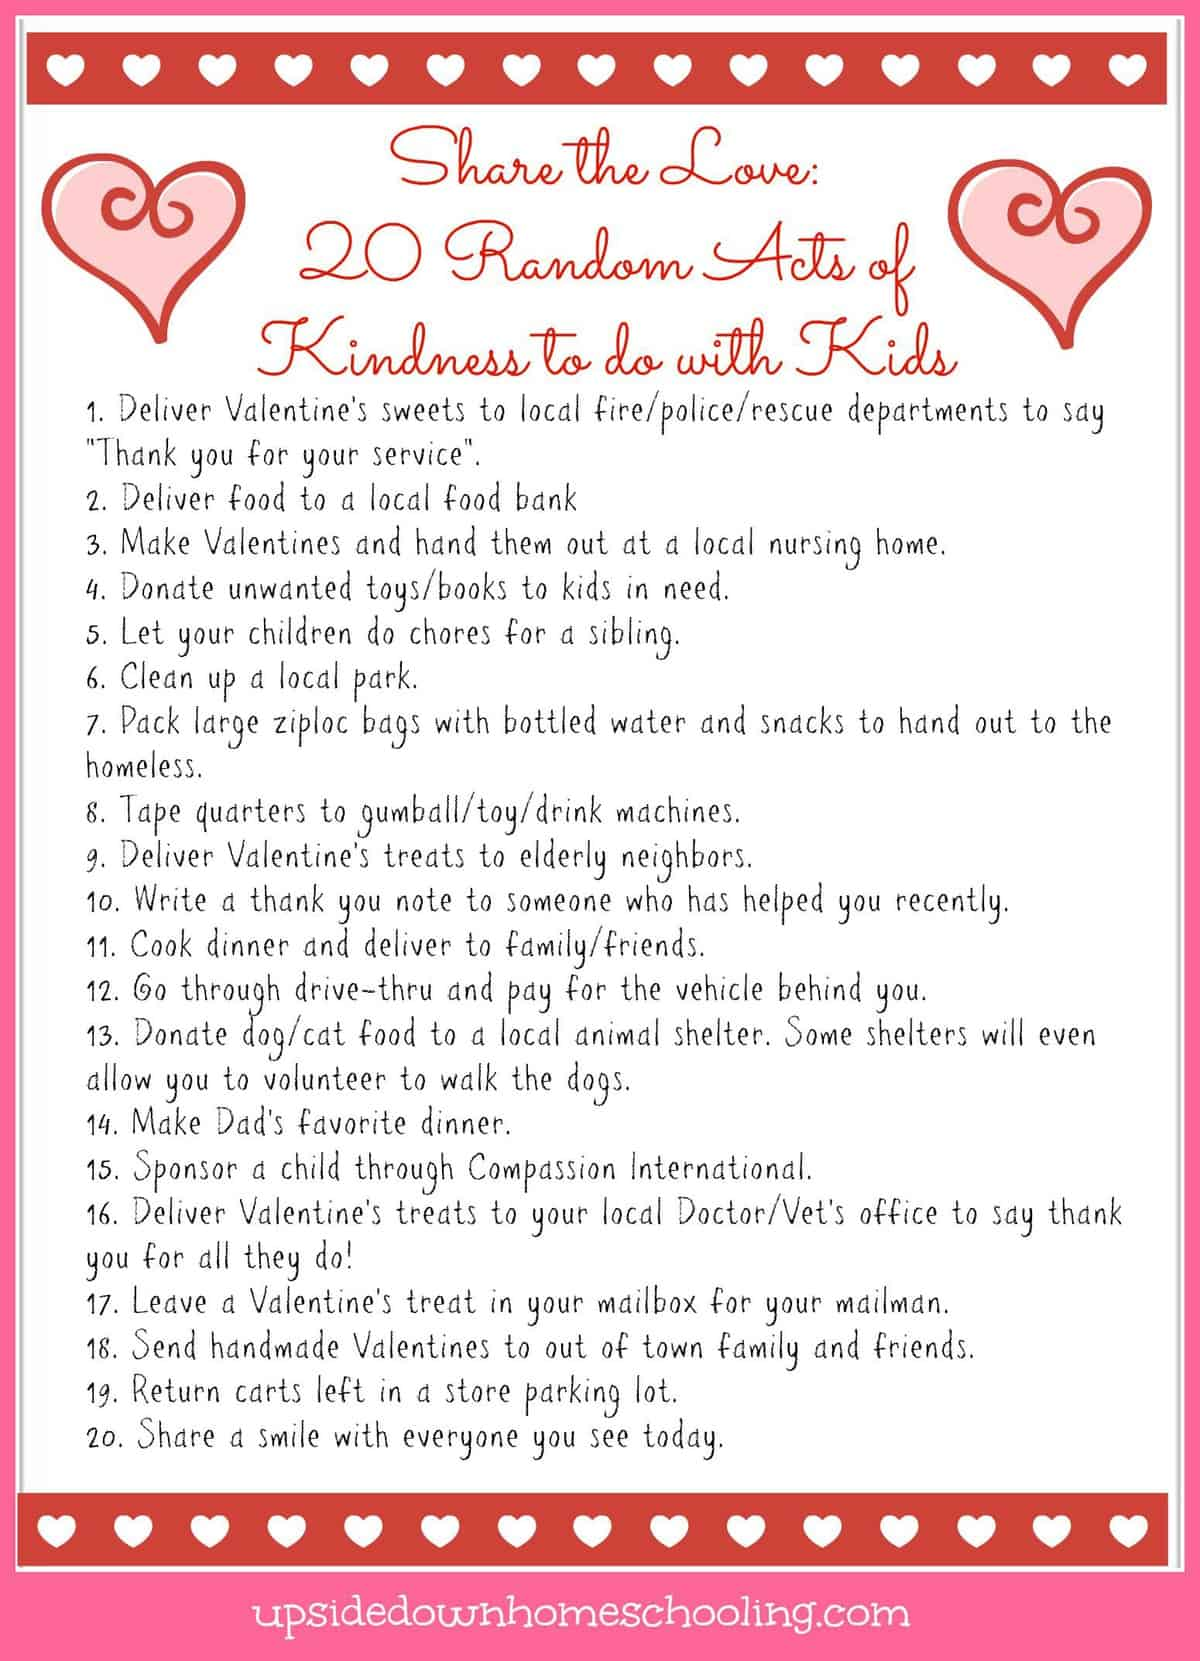 10 Fun Valentine Activities for Families to Stay Connected 1